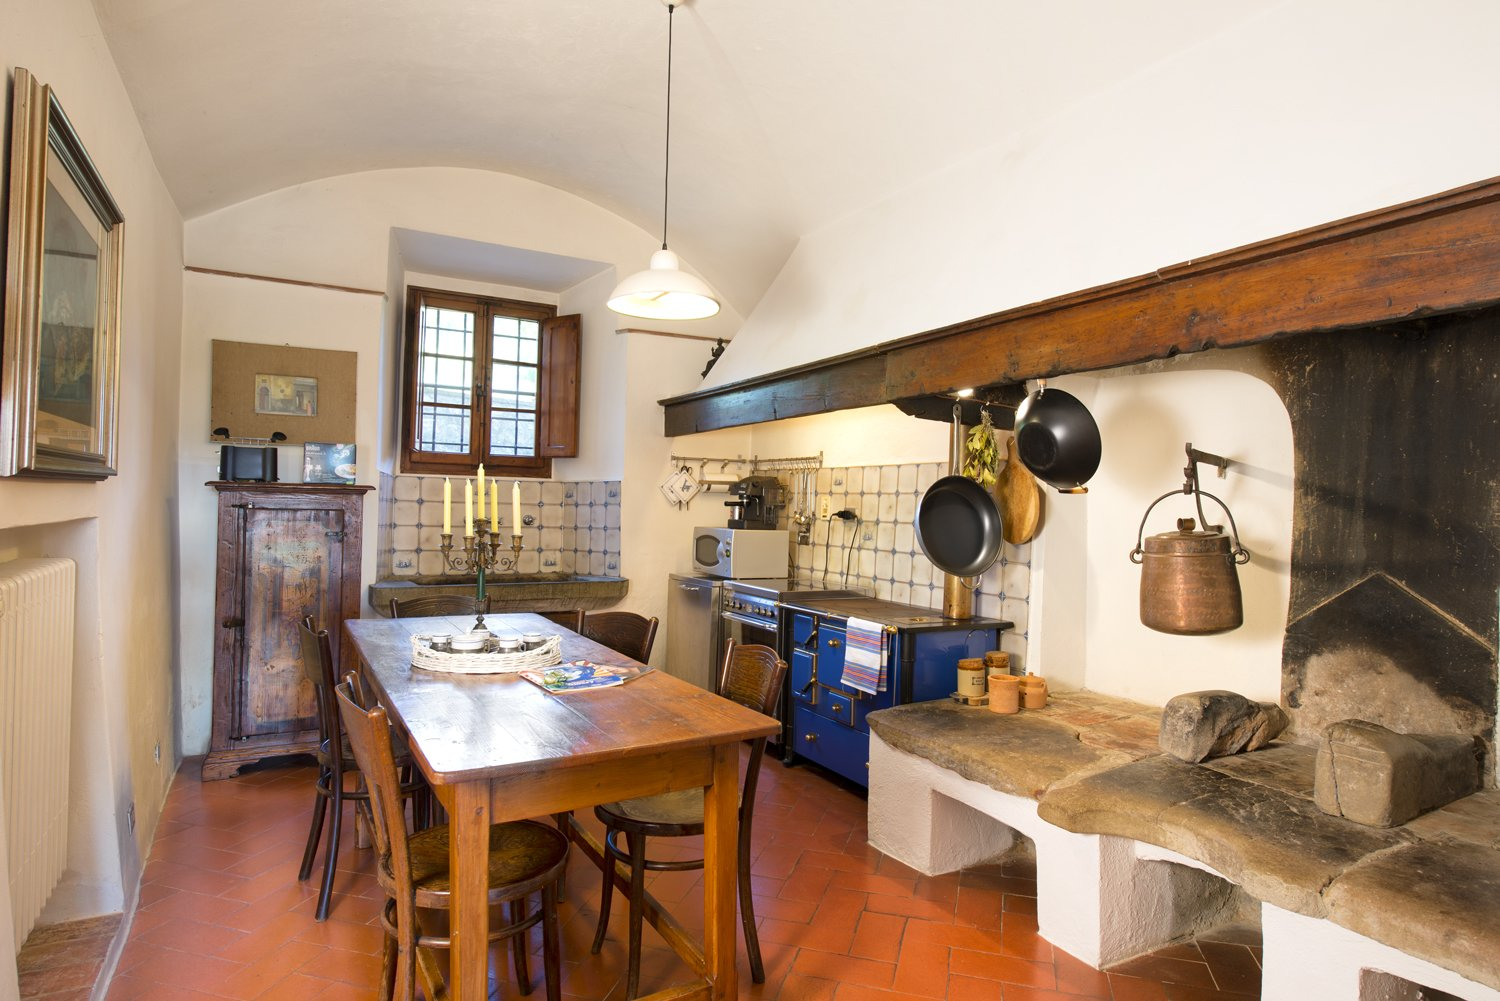 Kitchen, Terra Cotta Tile Floor, Ceramic Tile Backsplashe, Pendant  Lighting, Drop